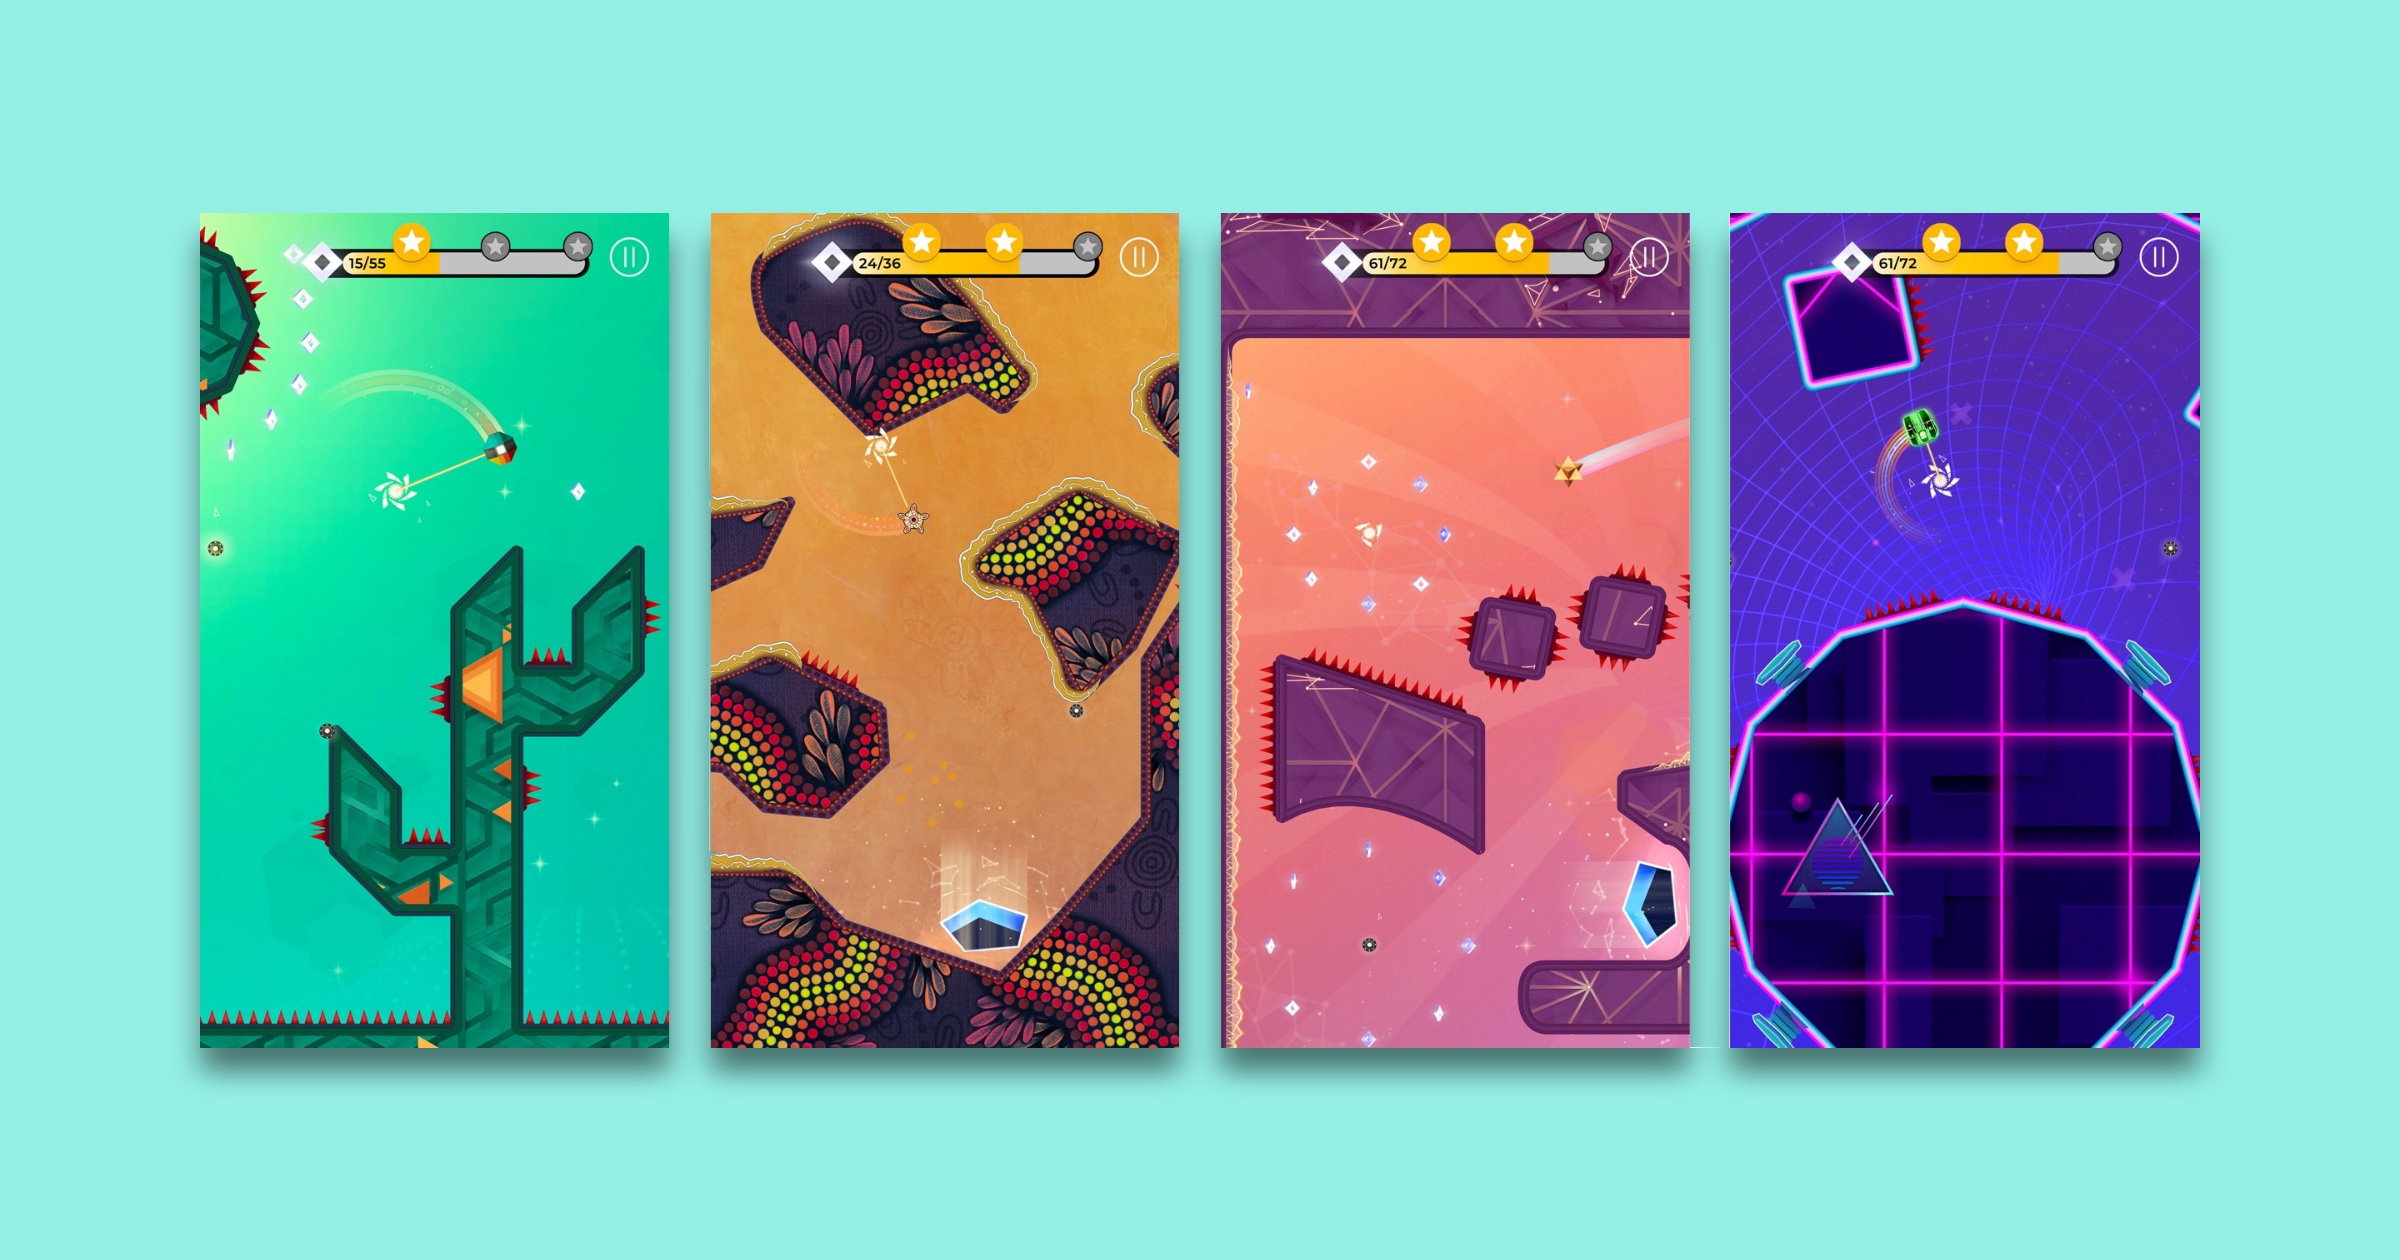 New Puzzle Game 'SP!NG' Arrives on Apple Arcade